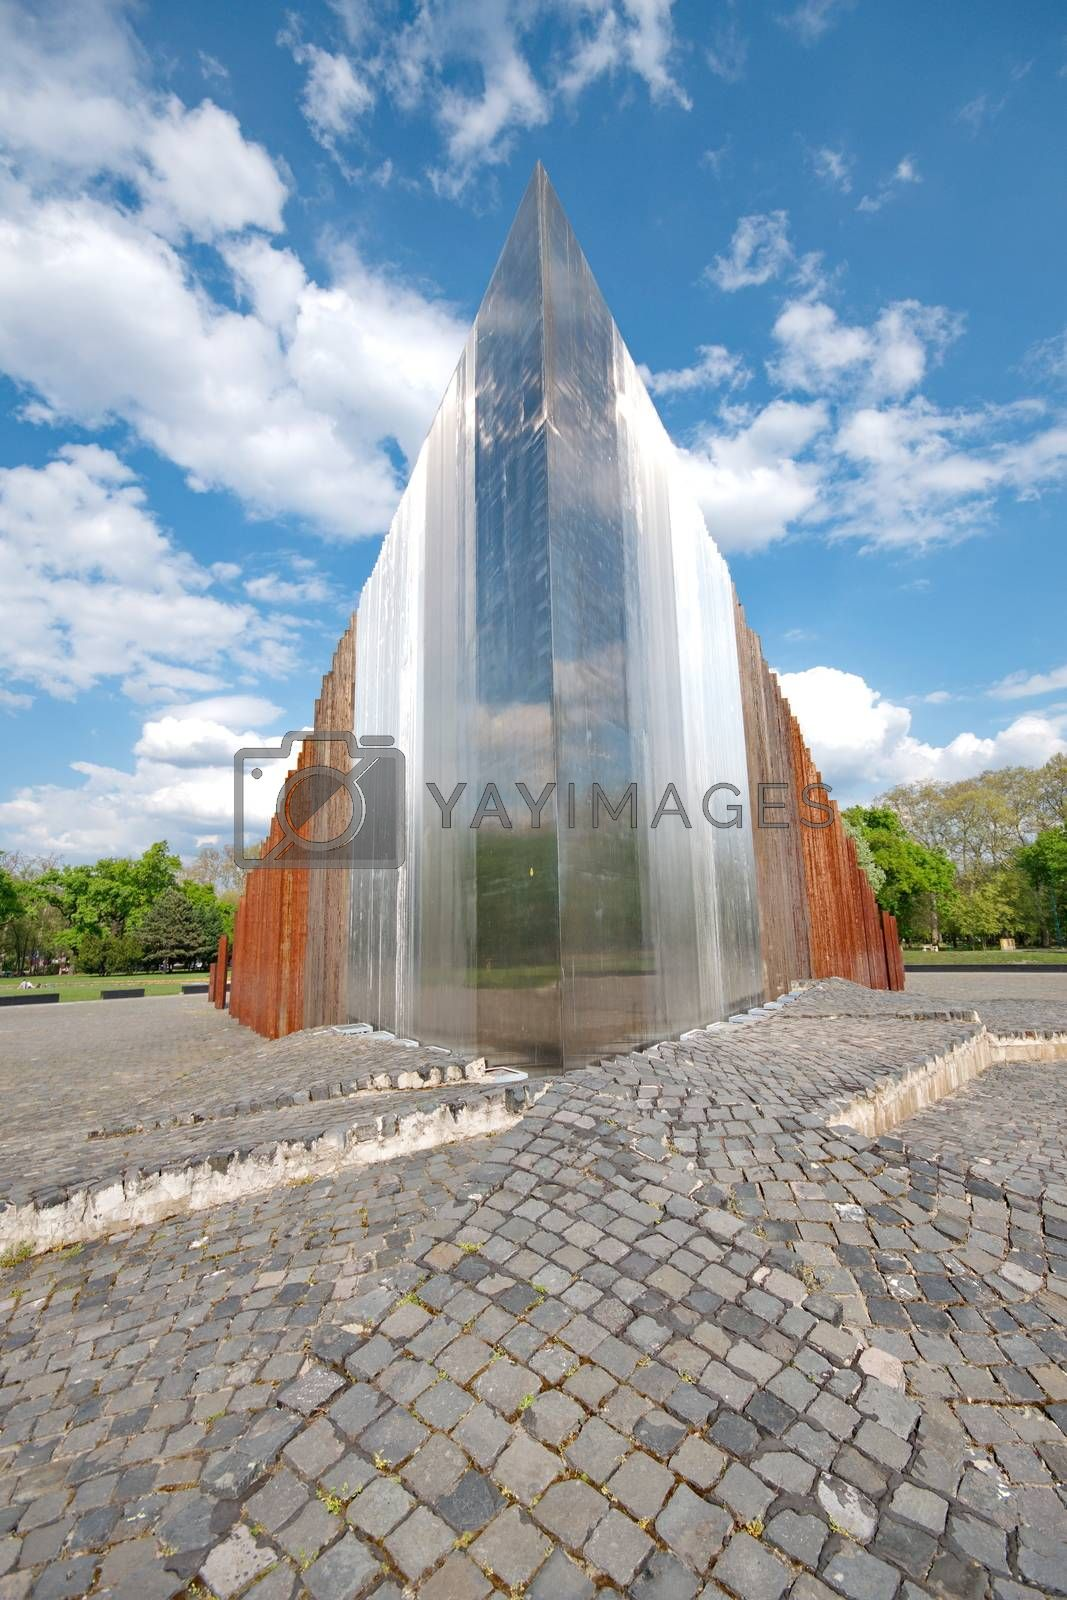 BUDAPEST - April 24: Abstract memorial for freedom fighters in Budapest, Hungary on April 24, 2015.